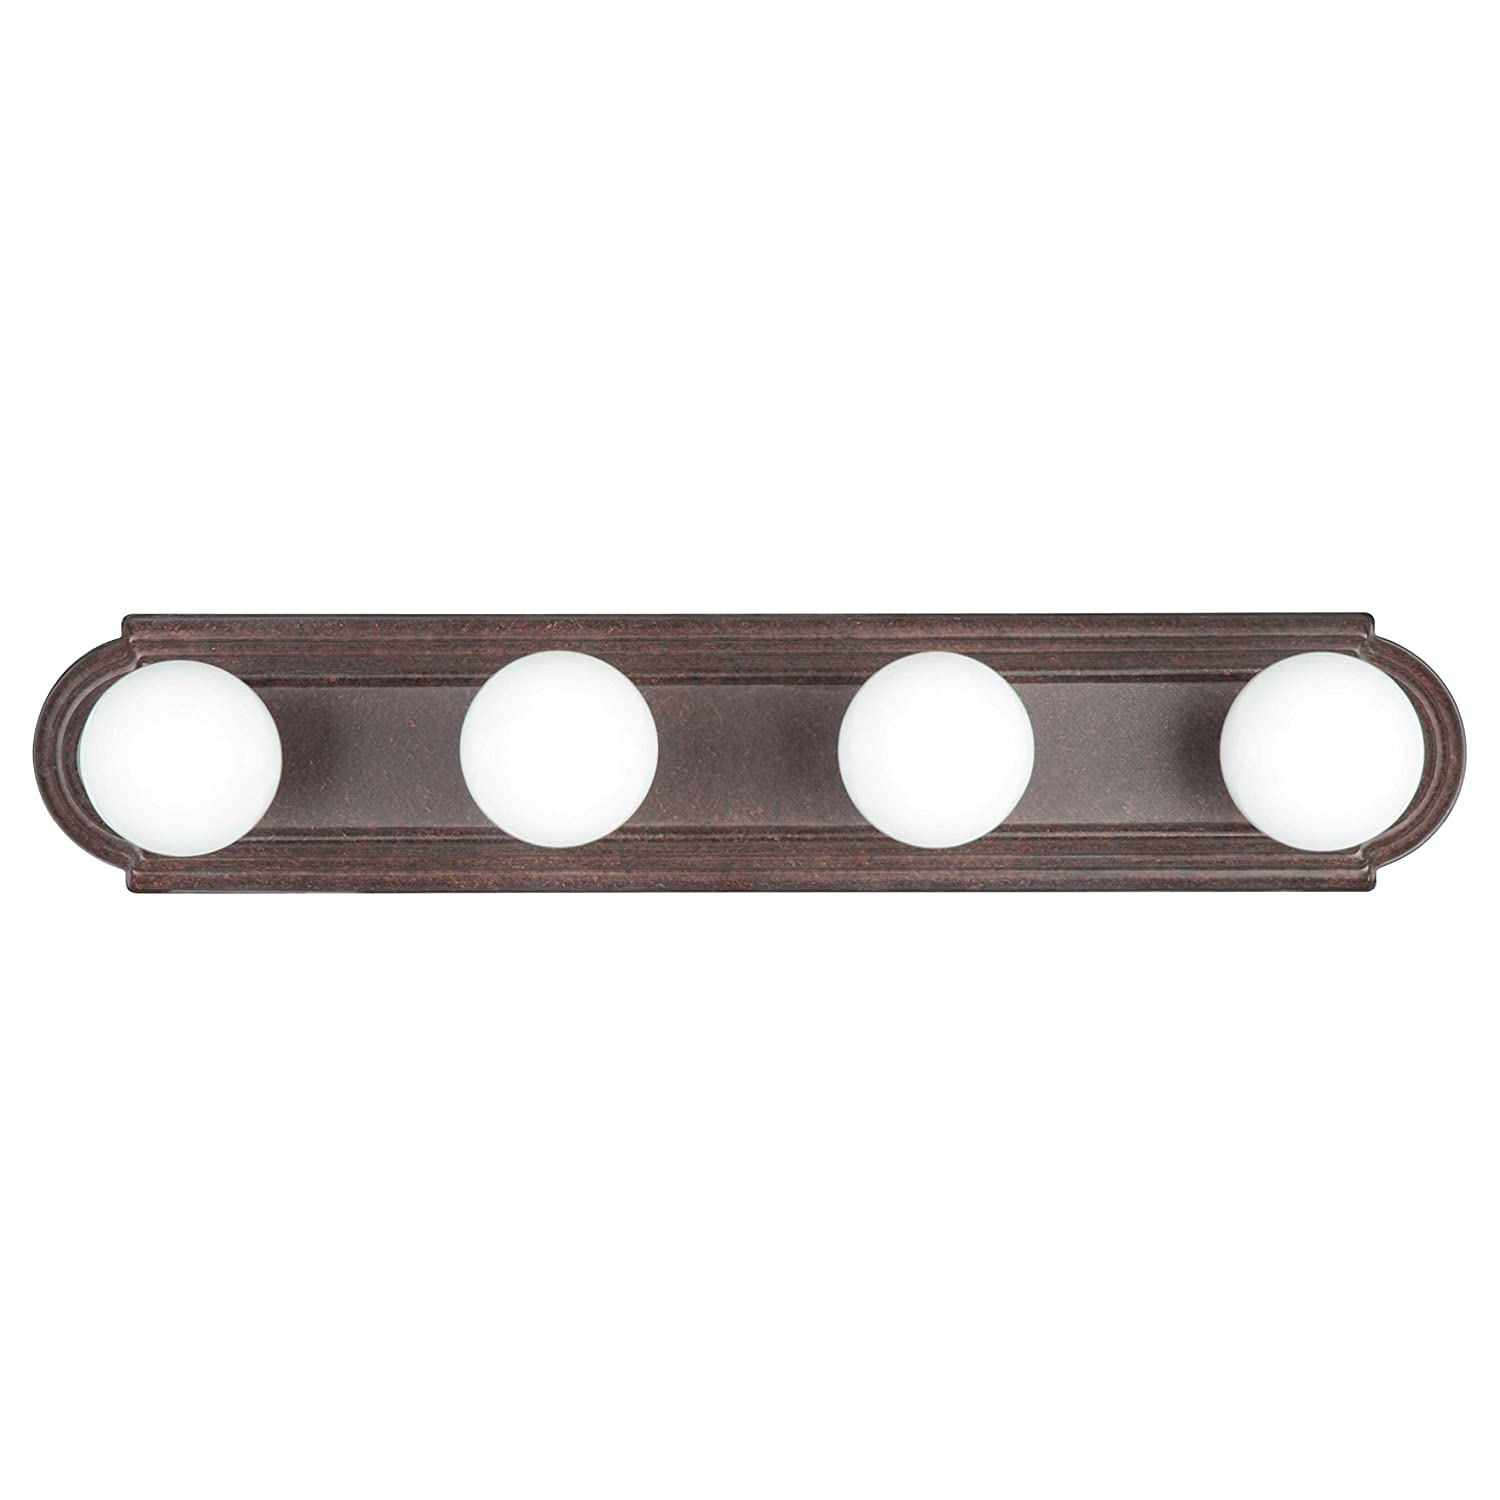 Sunset Lighting F3542-62 Vanity, Rubbed Bronze Finish